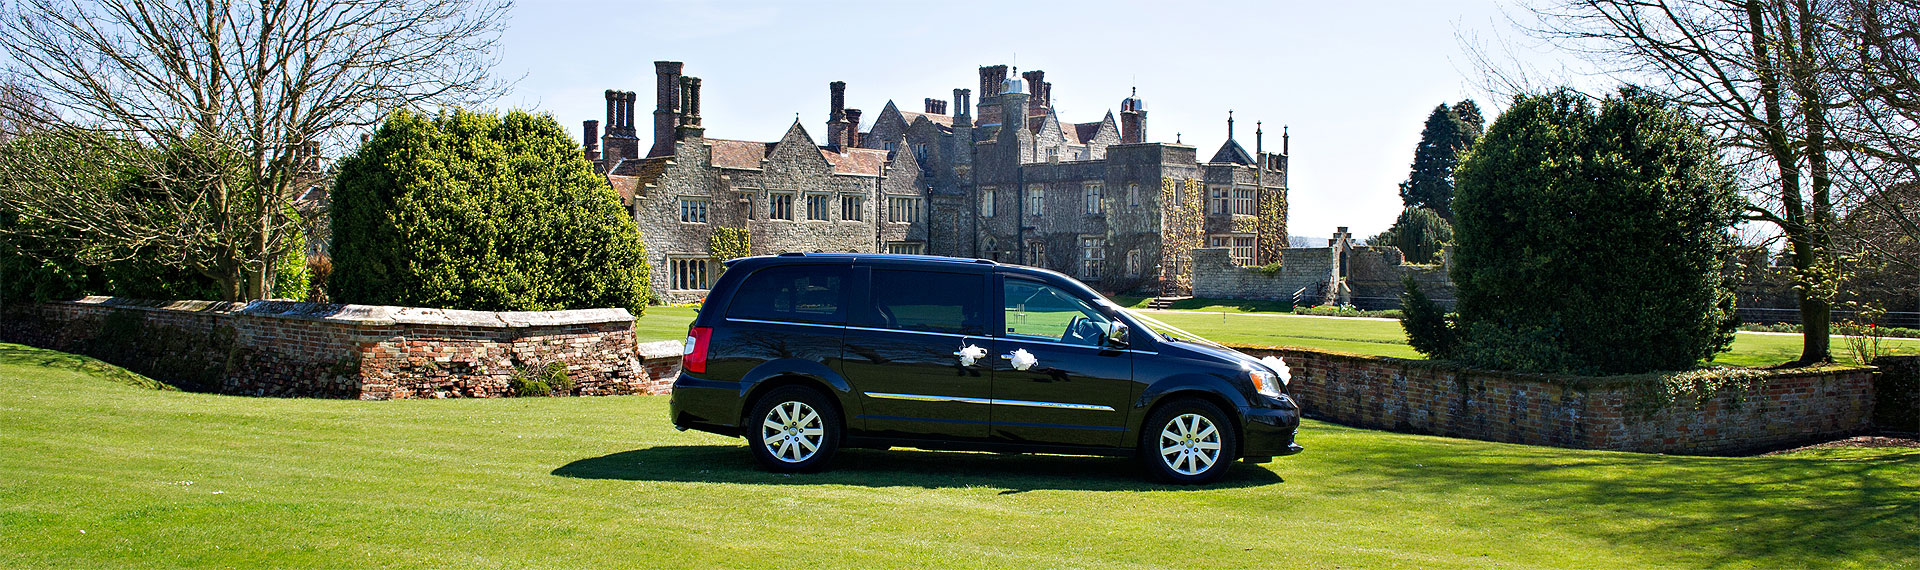 Wedding Chauffeur Kent